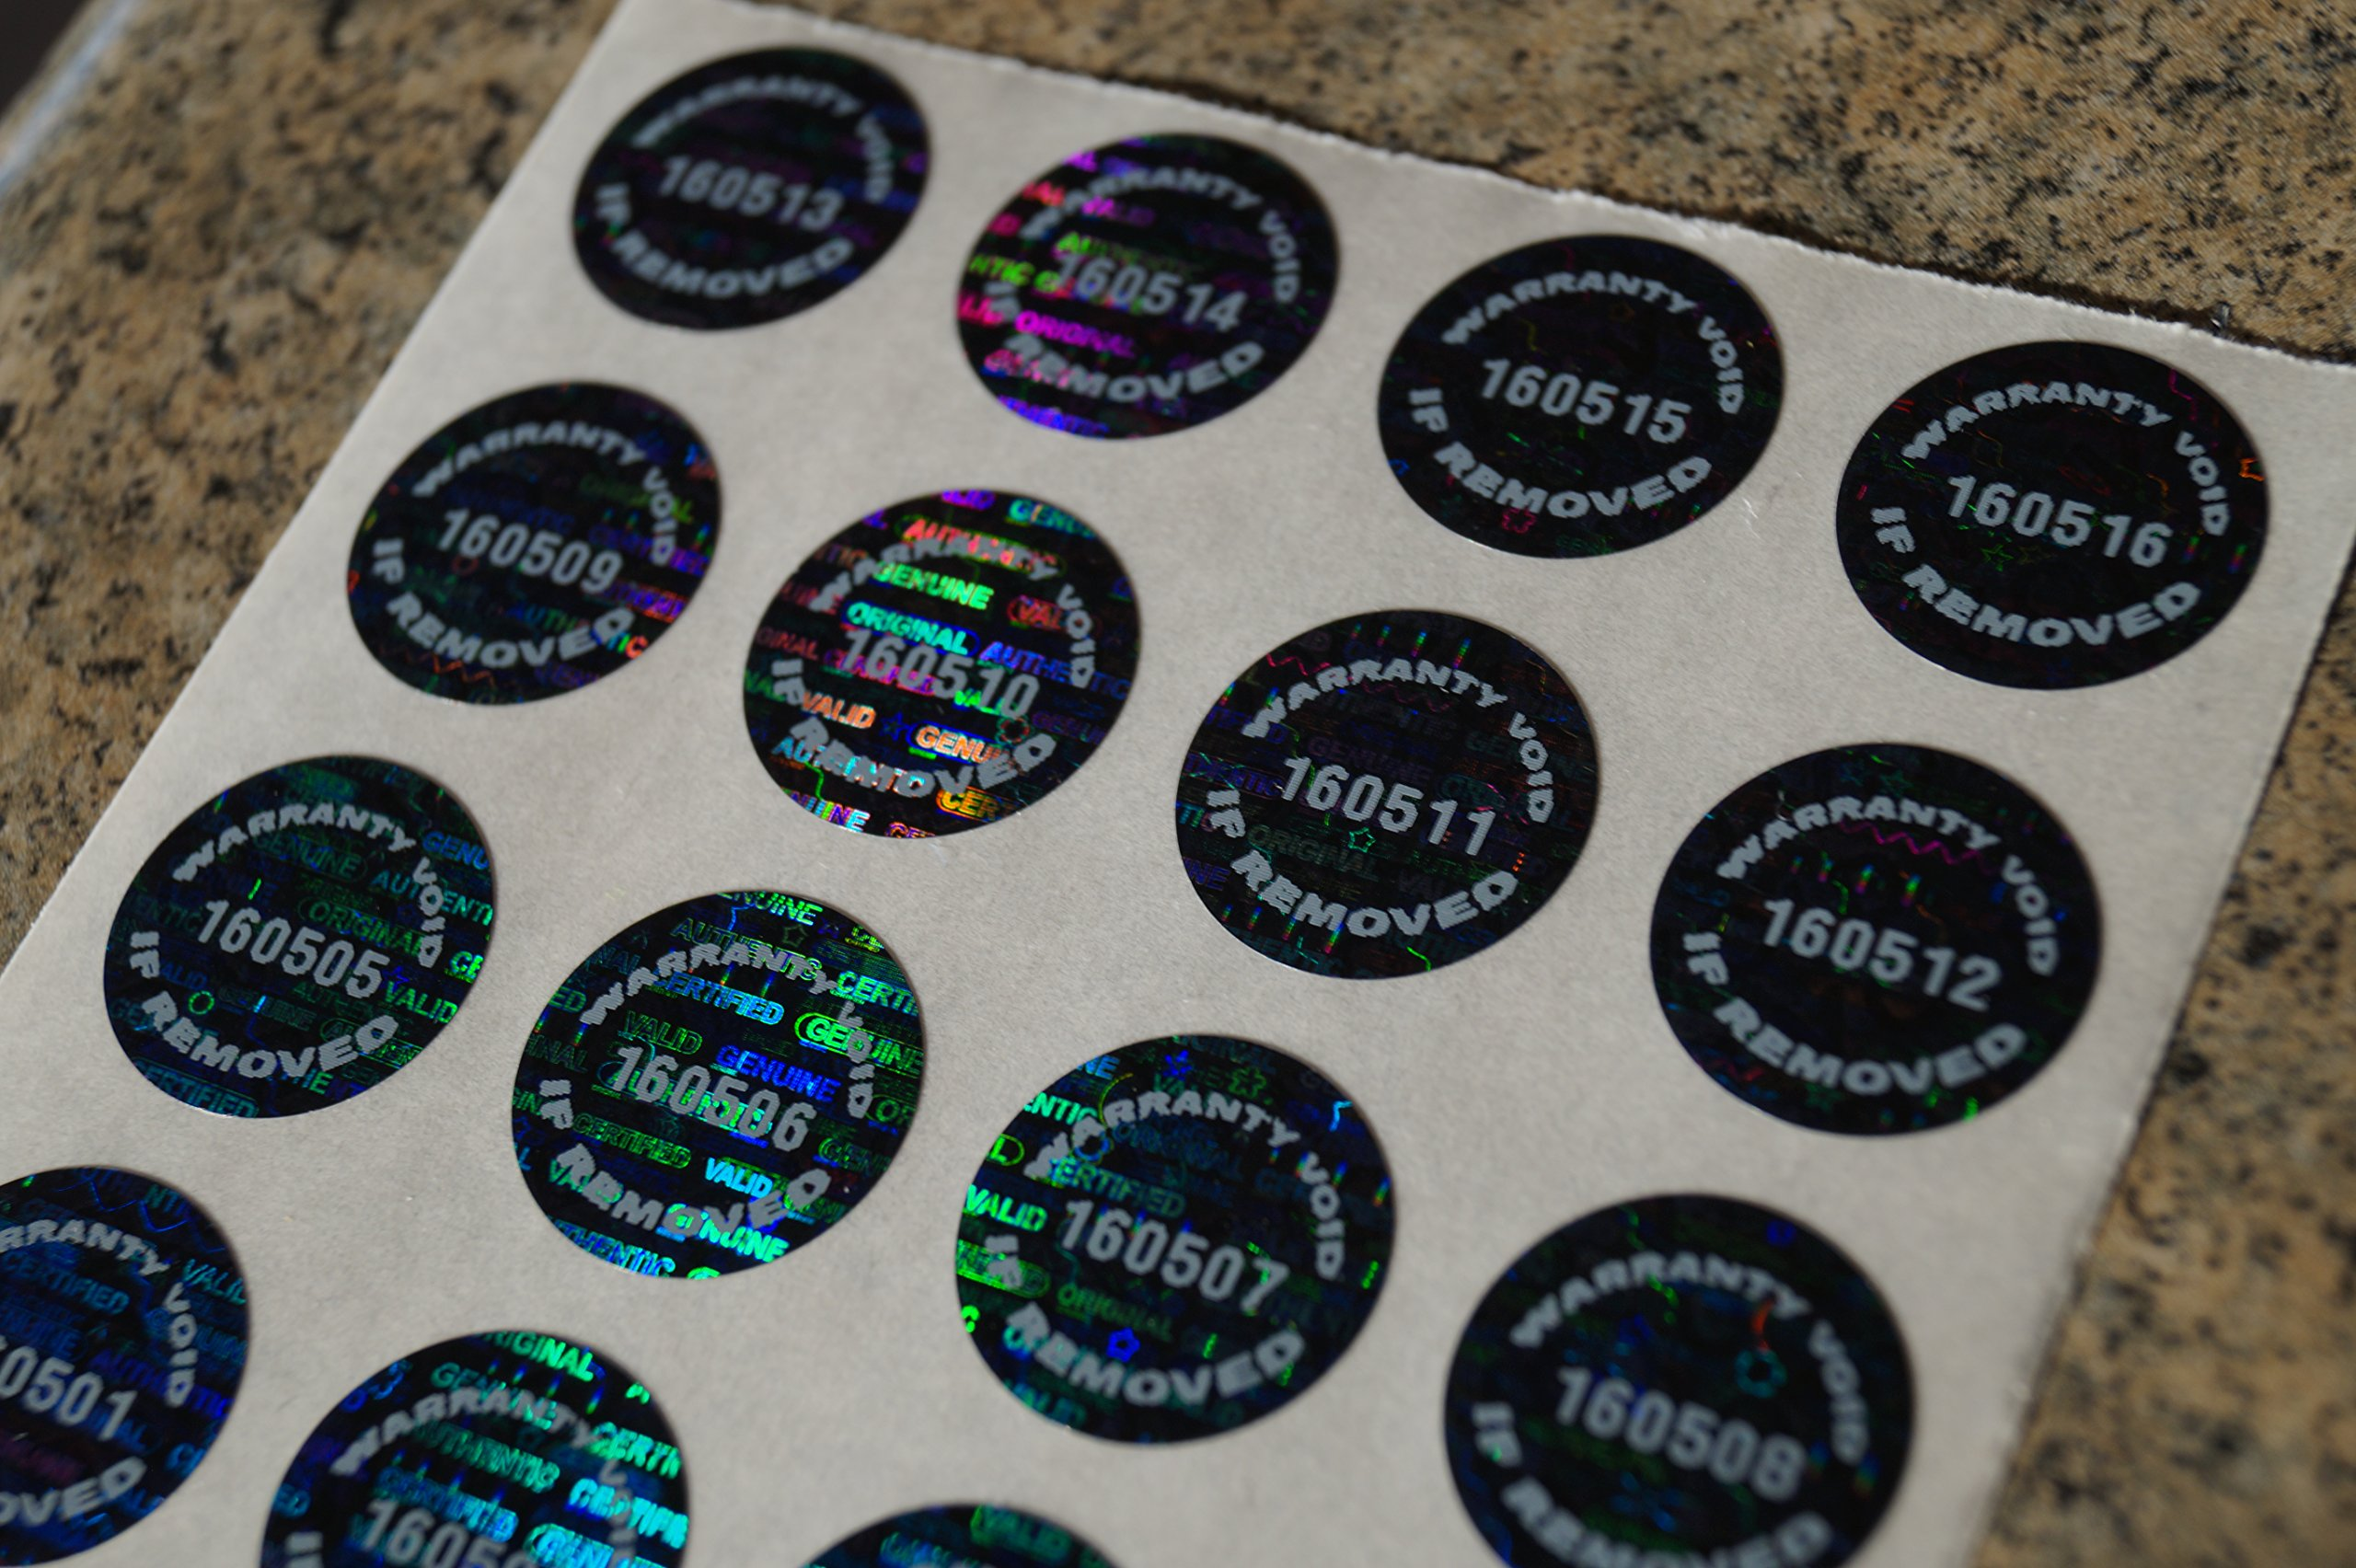 250 Black Tamper Evident Warranty Void High Security Labels Stickers (.65 Inch Round)